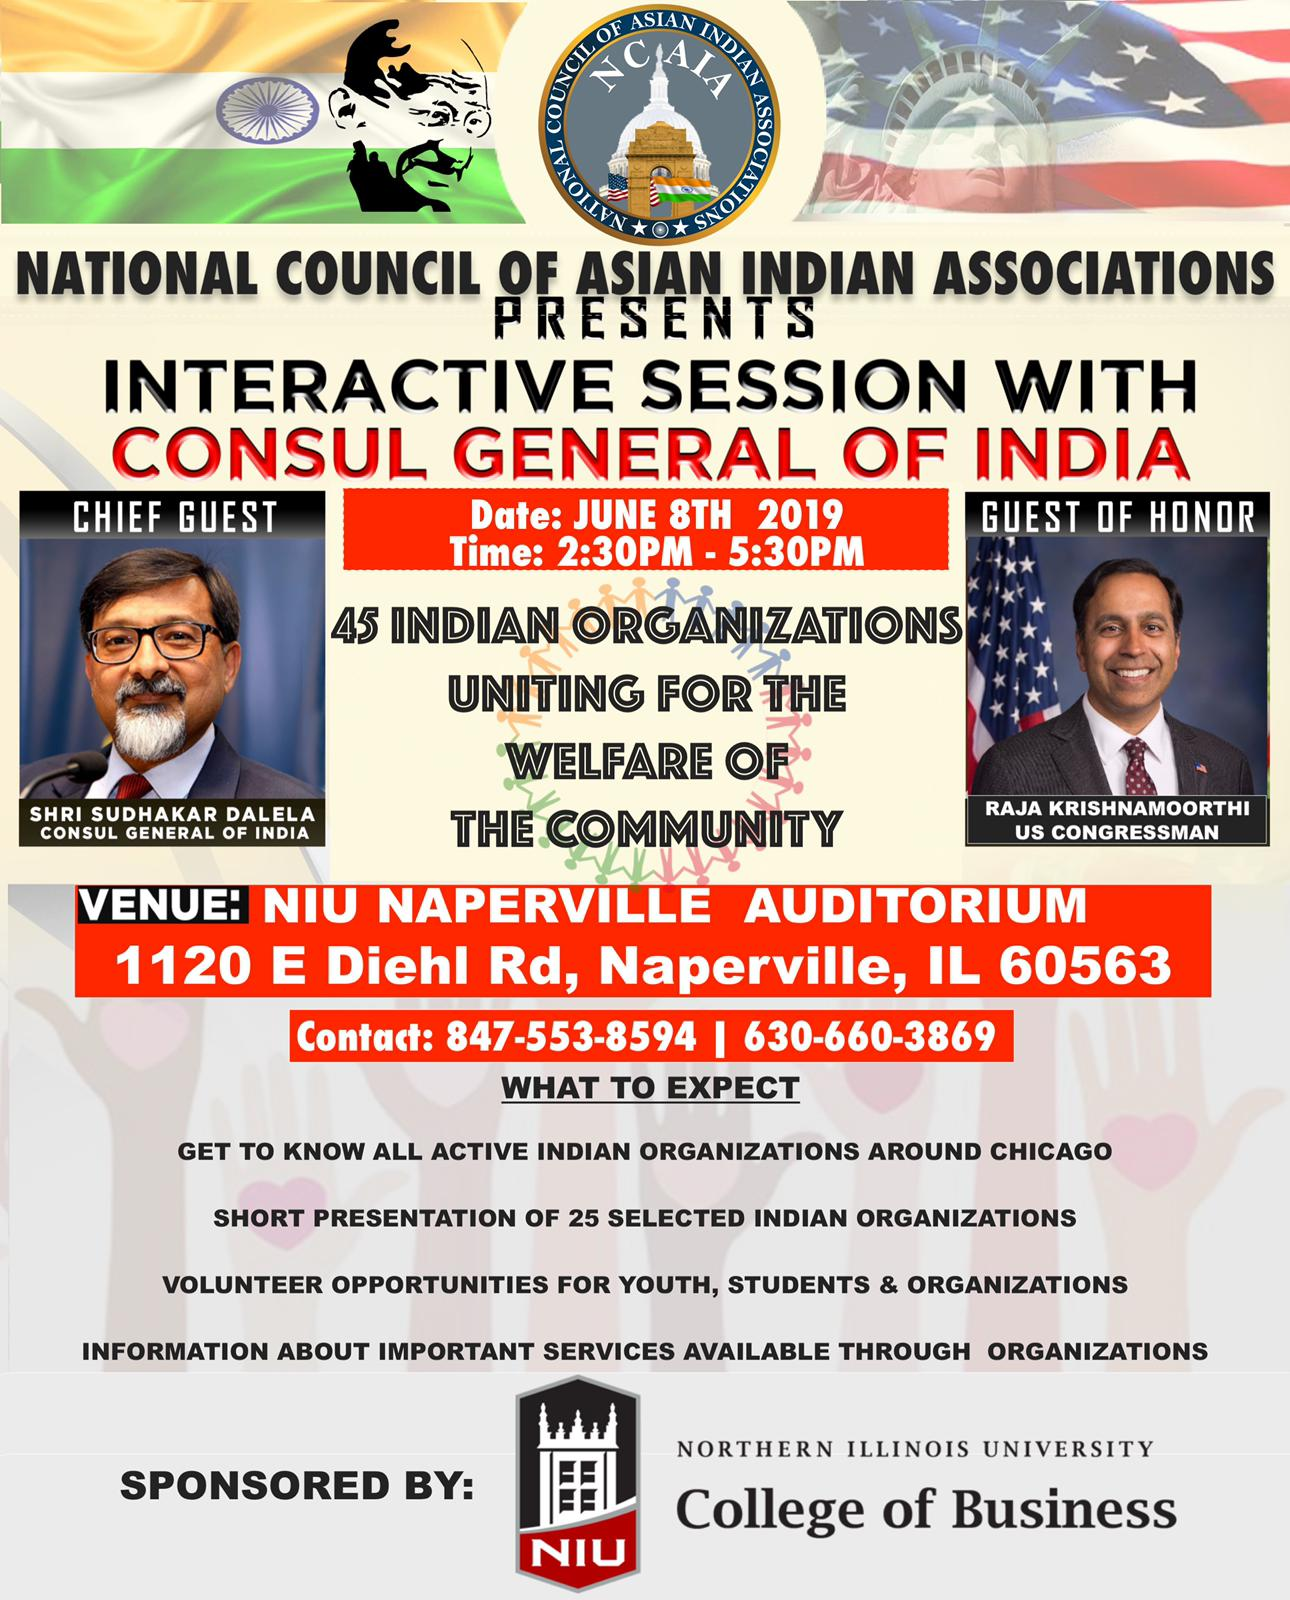 Interactive Session with the Consul General of India